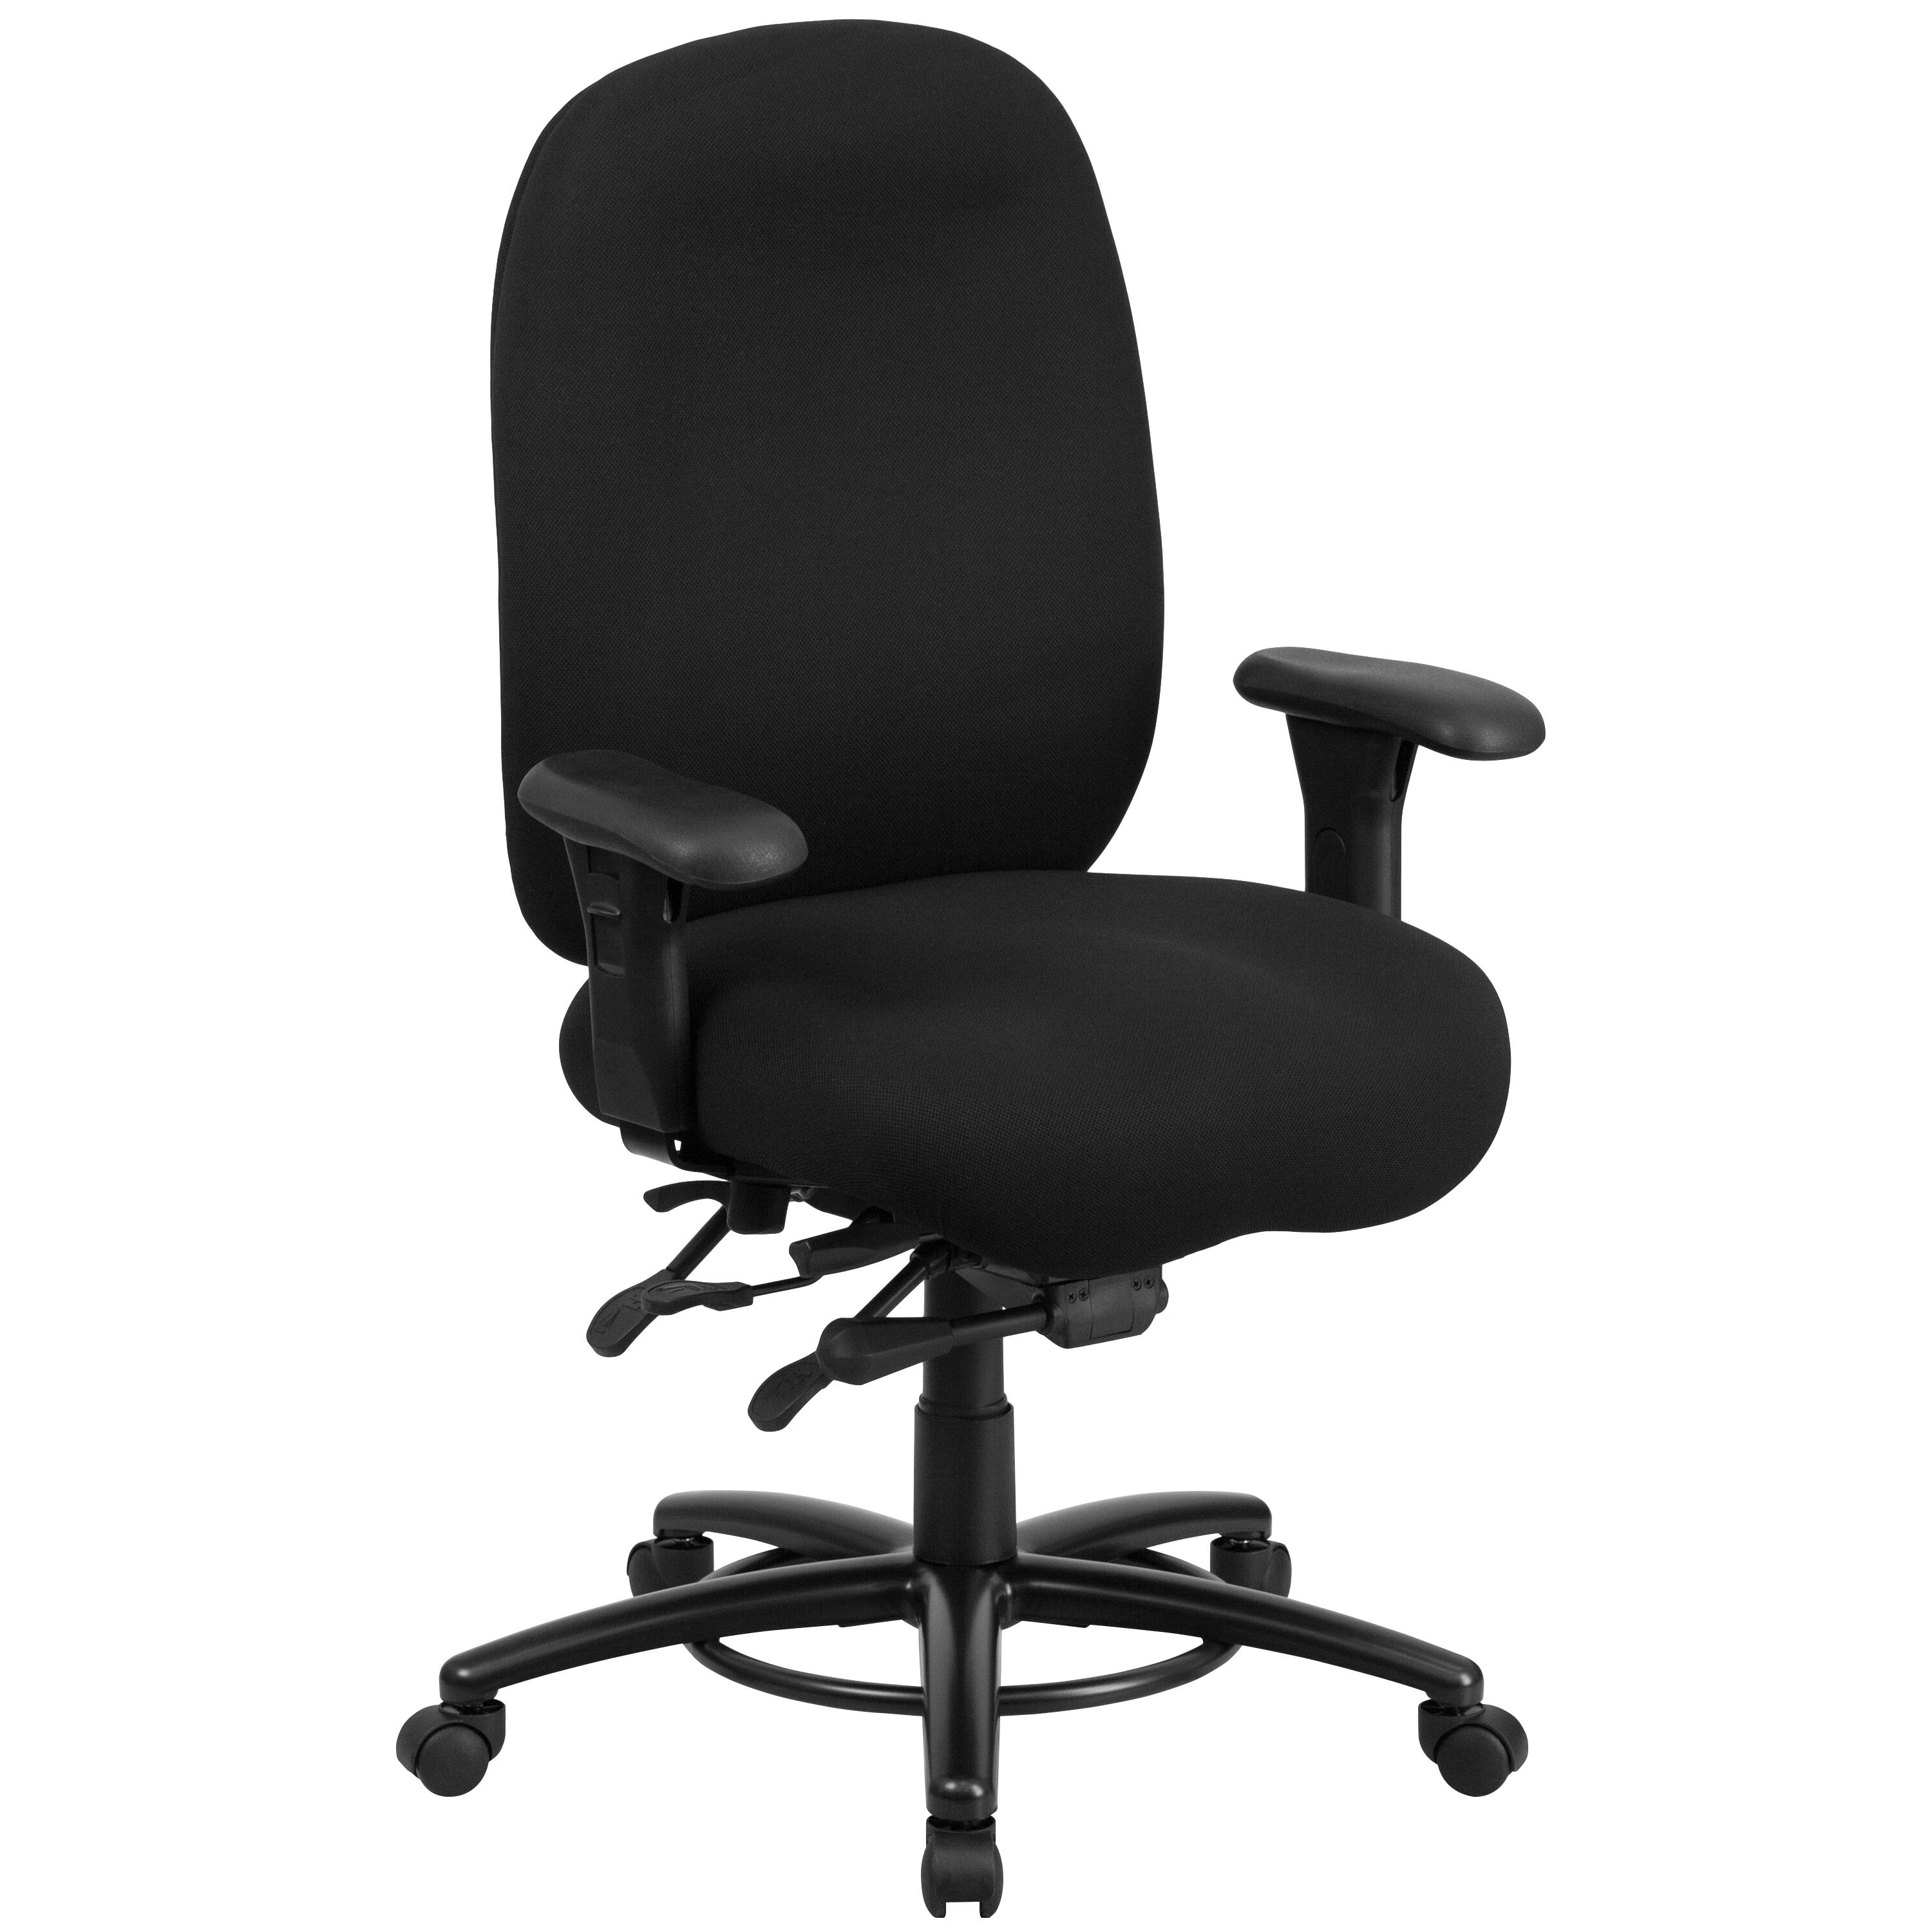 sc 1 st  Church Chairs 4 Less & Black 24/7 Use High Back-350LB LQ-1-BK-GG | ChurchChairs4Less.com